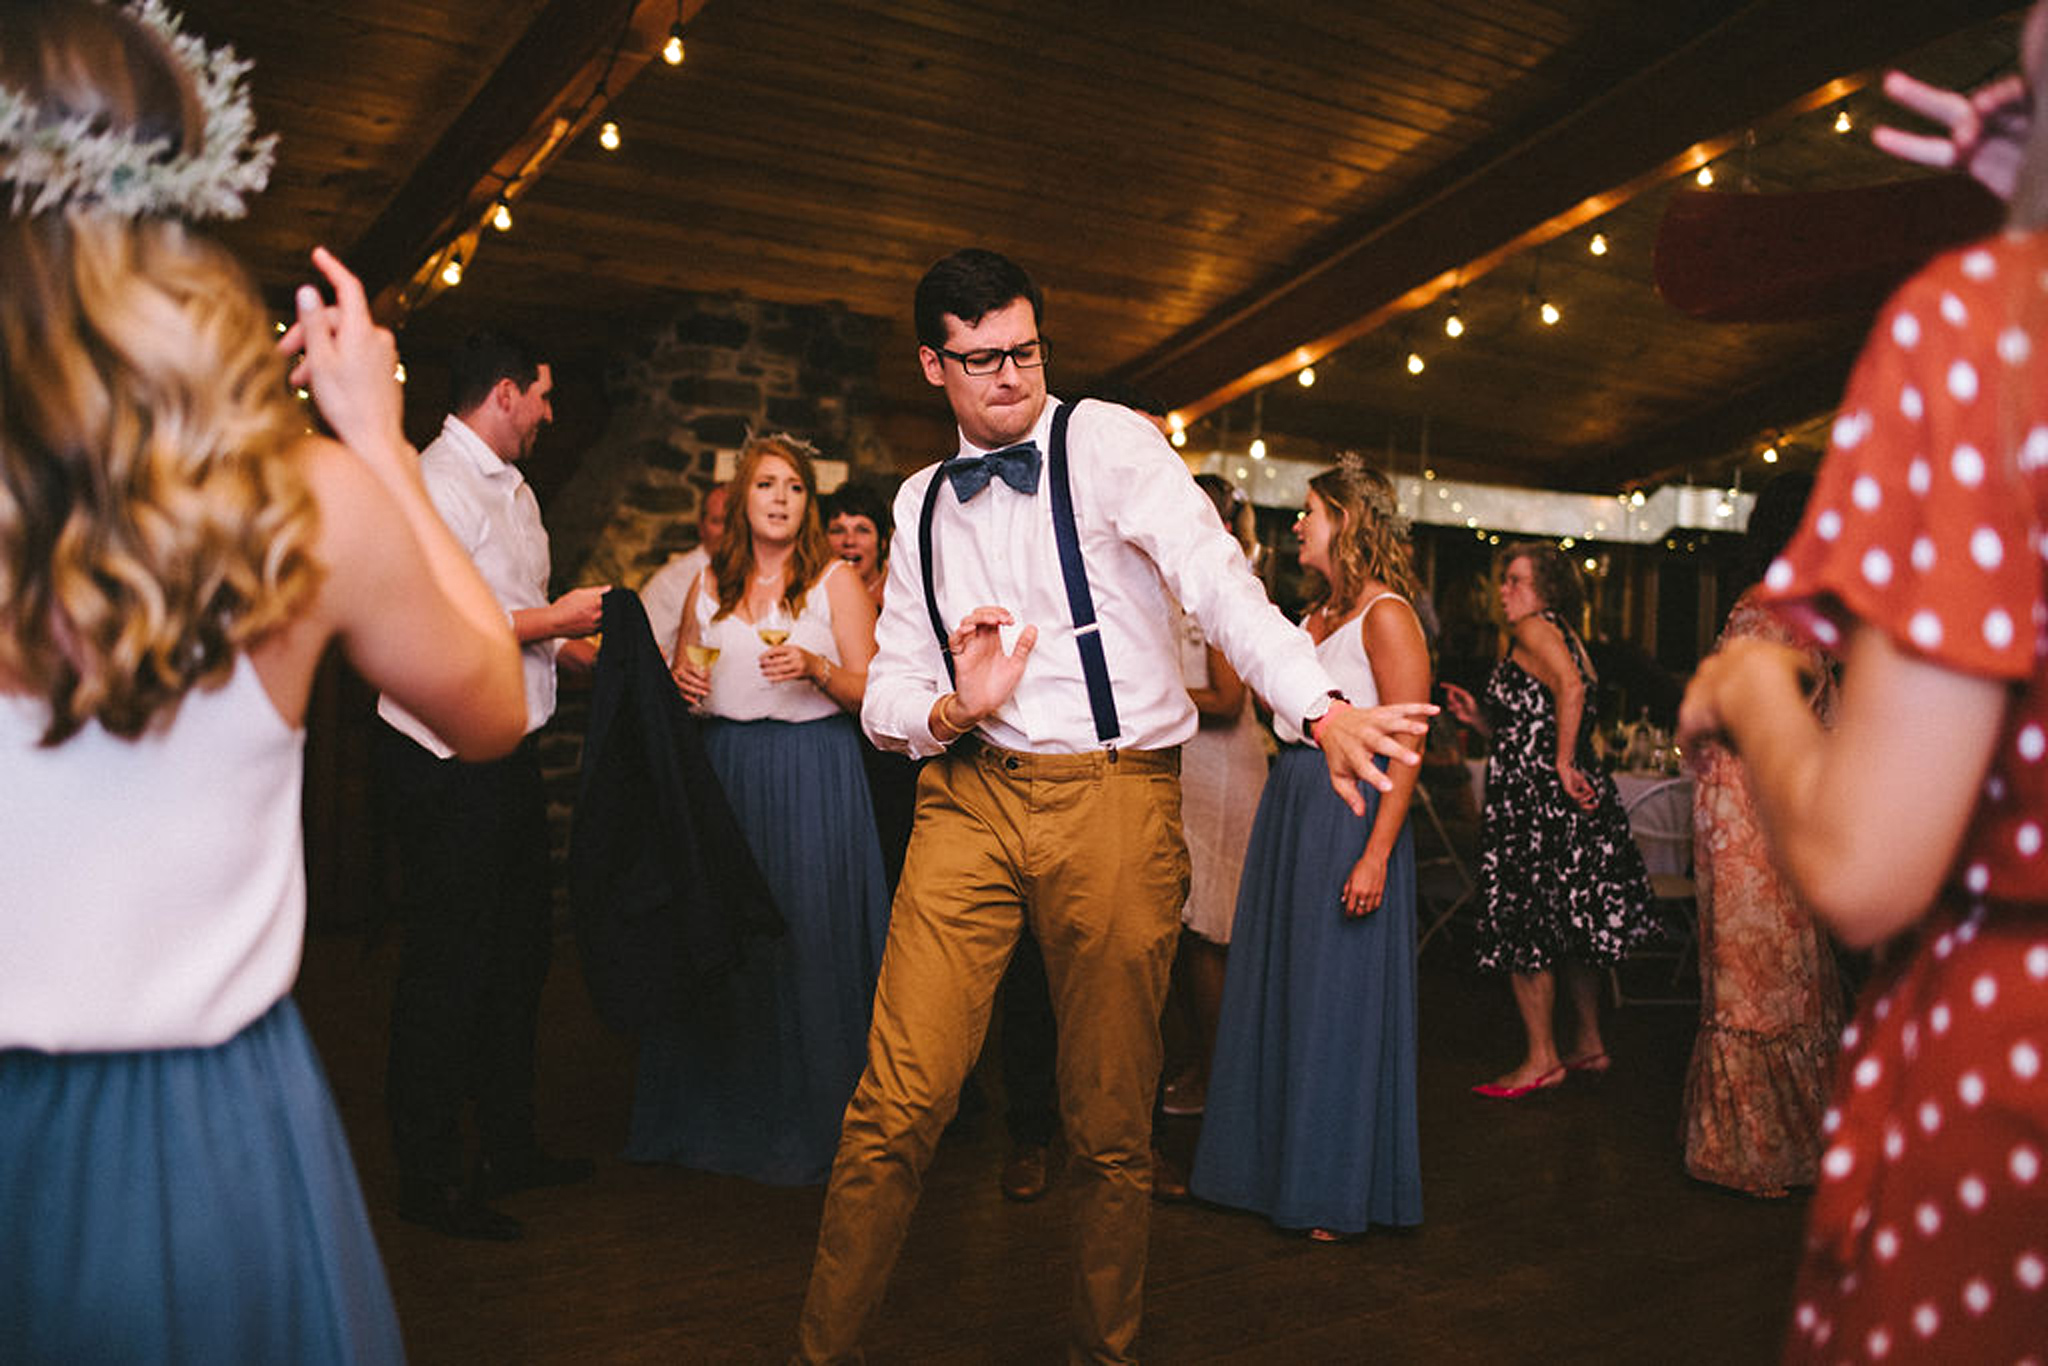 sweet dance moves from groomsman at Parry Sound camp wedding